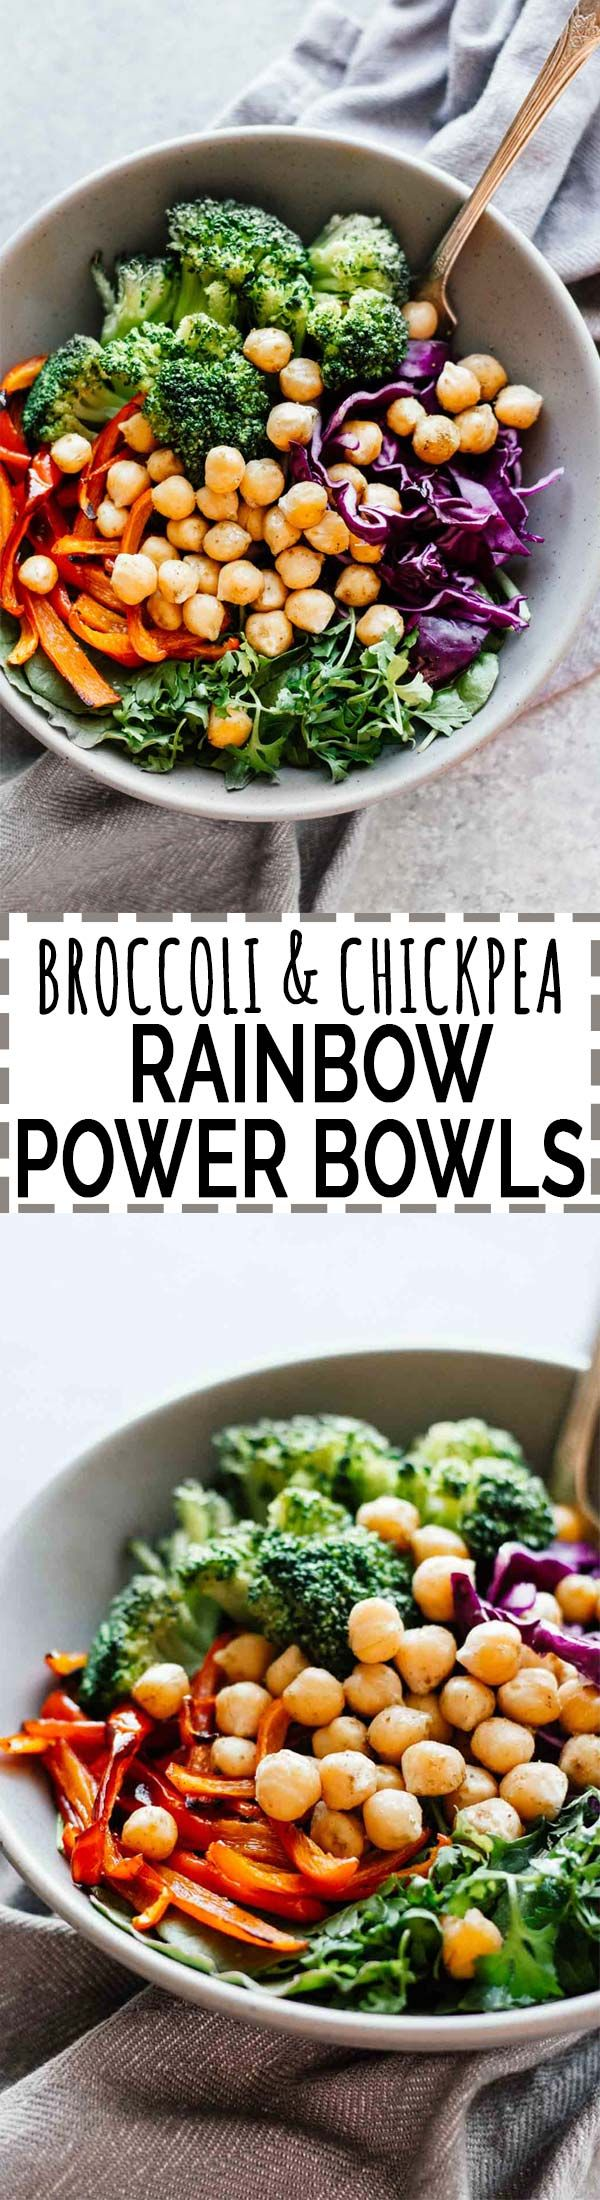 Broccoli & Chickpea Rainbow Power Bowls! Vegan, vegetarian, gluten-free, grain-free. Make these in 25 minutes or less, double to meal-prep for easy lunches and dinners throughout the week!